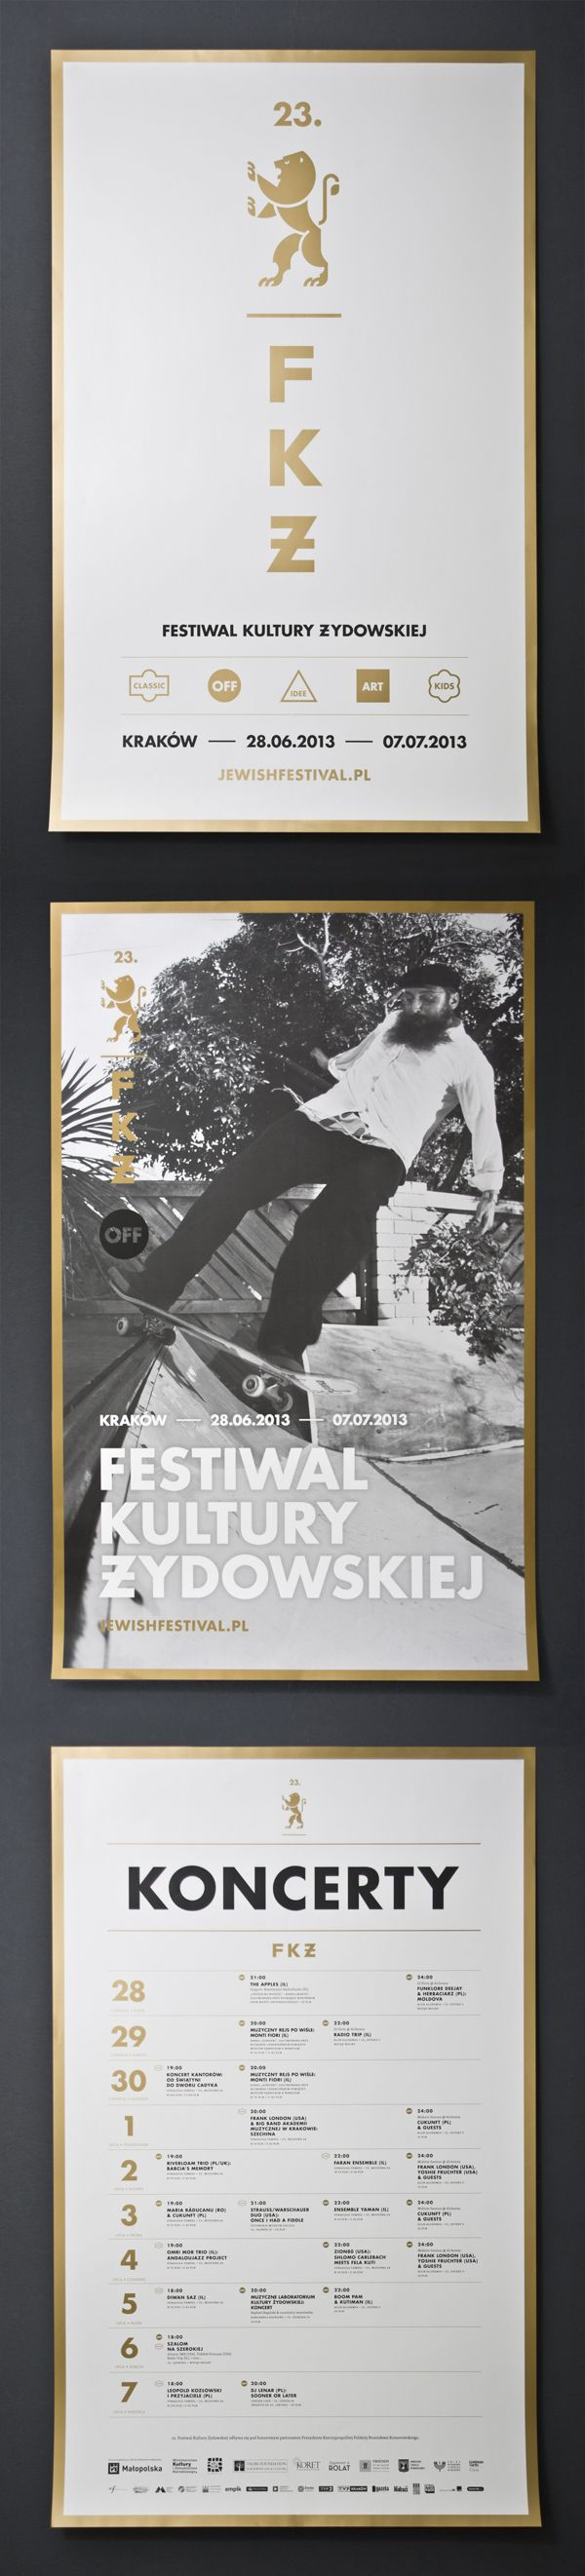 59 best design print layout images on pinterest graph design visual identity and promotional materials for krakow jewish culture festivale krakow jewish culture festival is an international cultural event with a fandeluxe Gallery